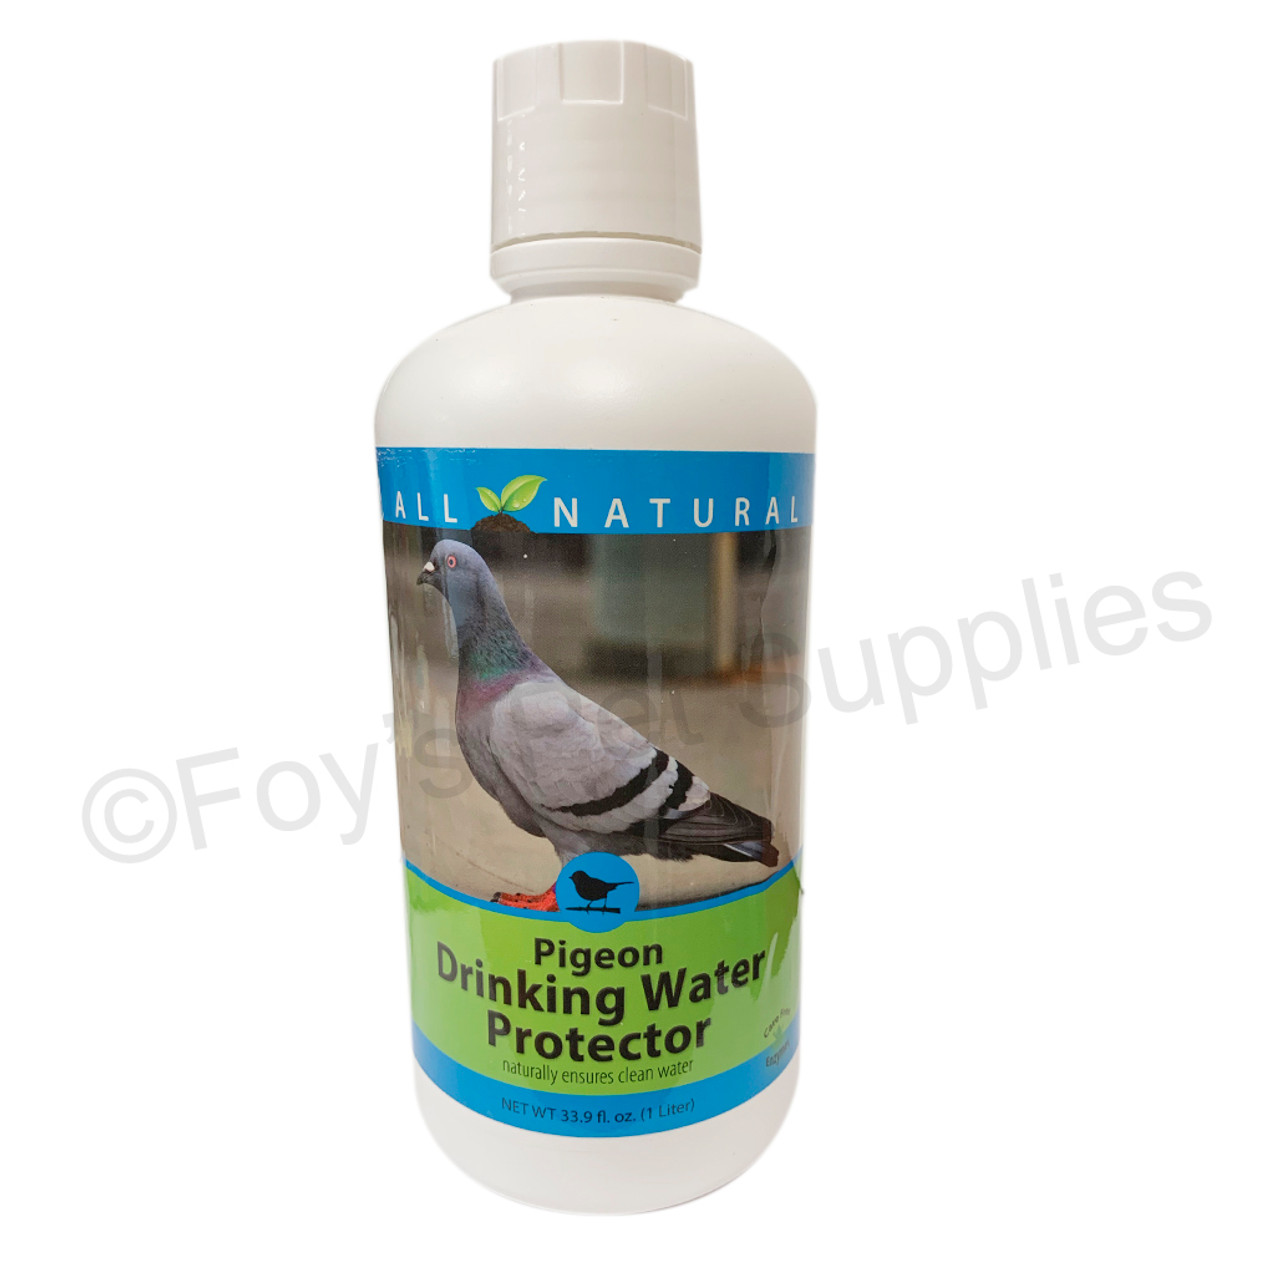 1679, all natural, pigeon drinking water protector